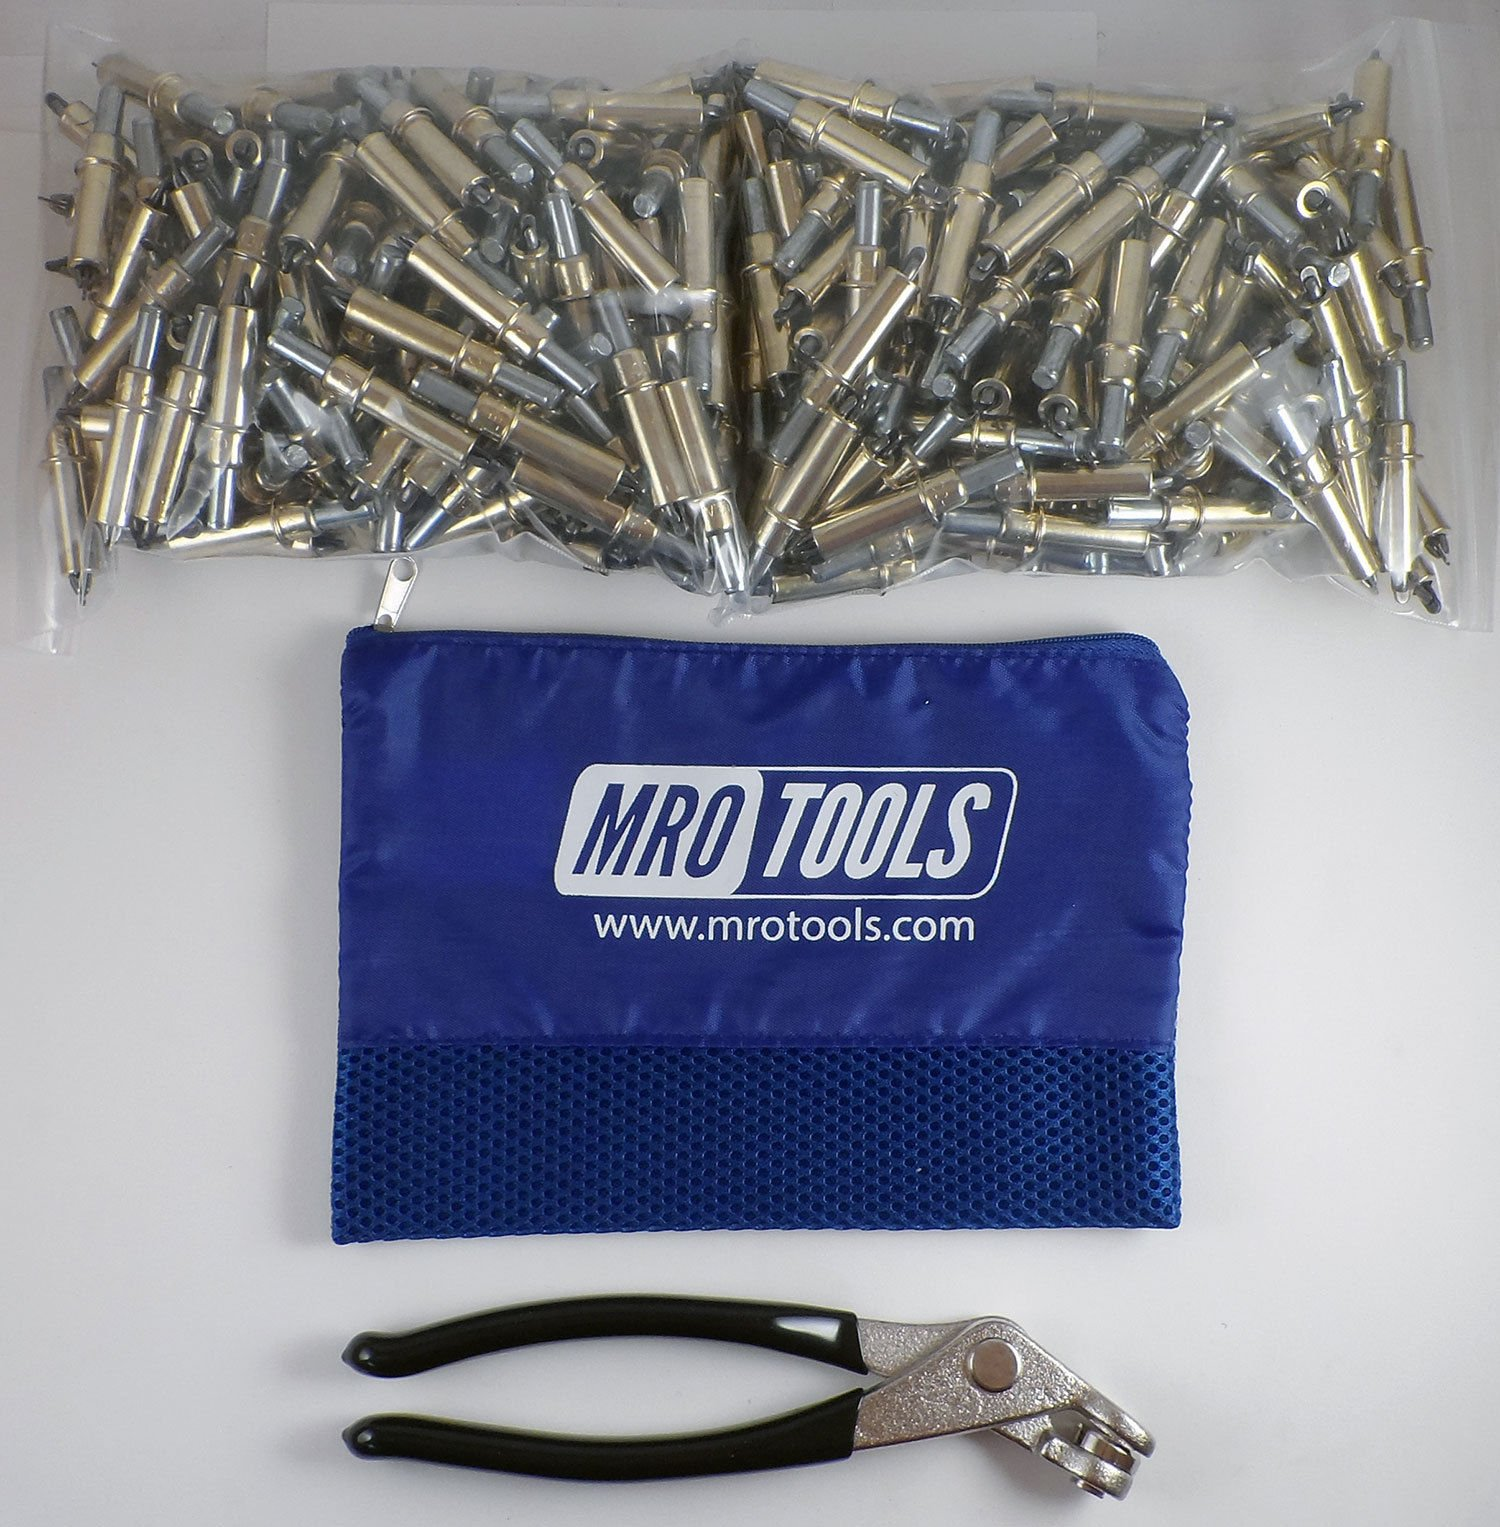 400 3/16 Cleco Sheet Metal Fasteners + Cleco Pliers w/Carry Bag (K1S400-3/16) by MRO Tools Cleco Fasteners